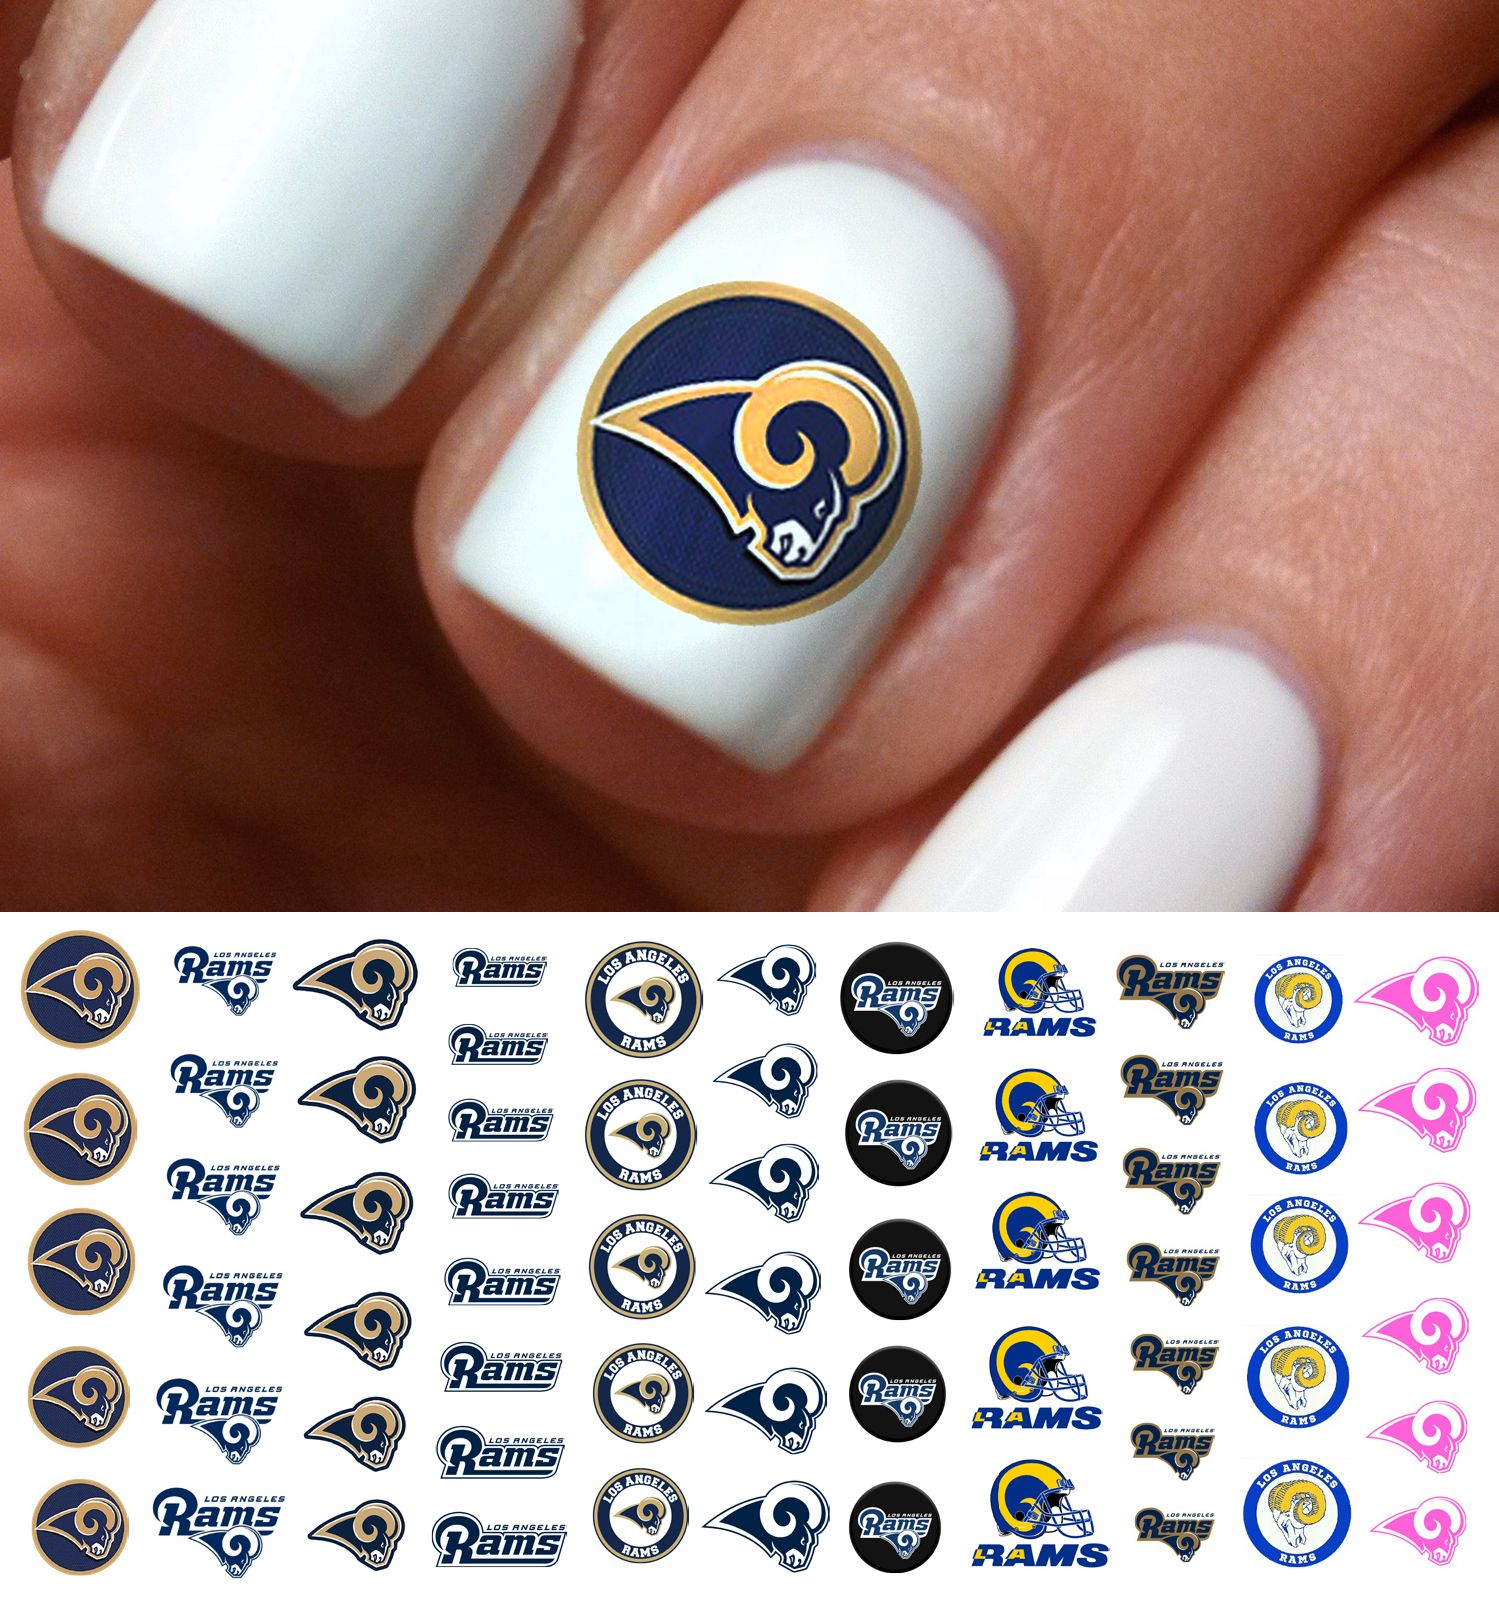 Show Your Rams Pride At The Game On Sunday With Nail Art From Moon Sugar Decals Www Moonsugardecals Com You Can Find These With Images Football Nail Art Football Nails